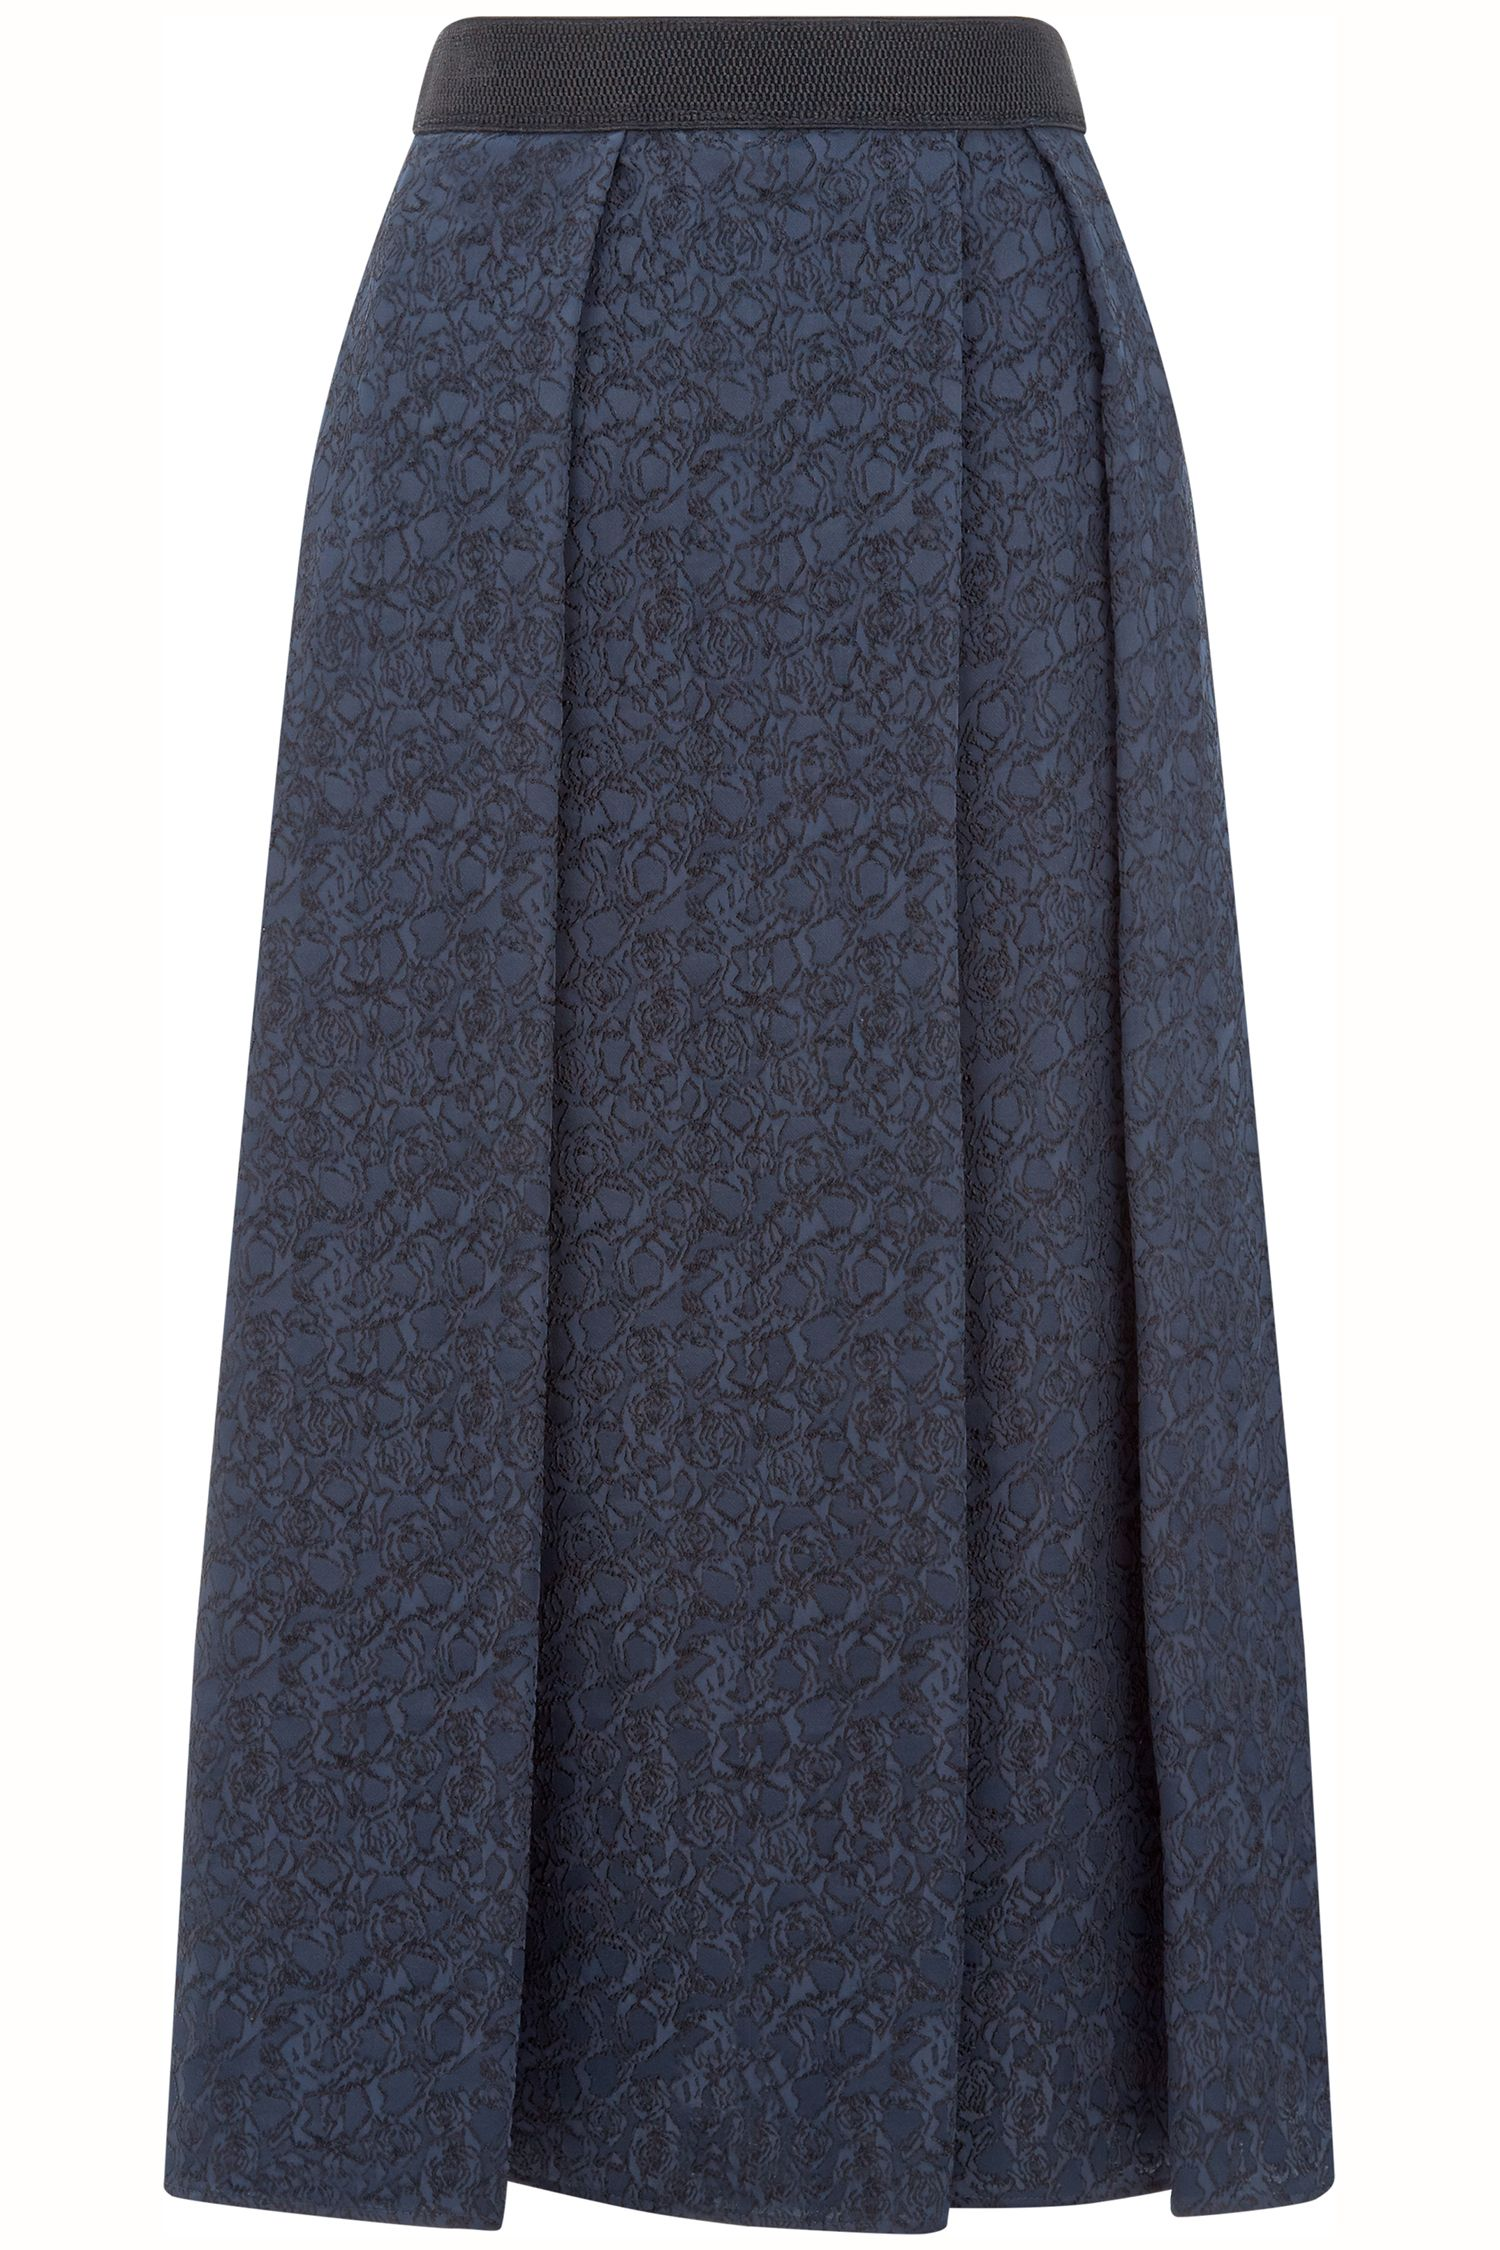 Damsel in a Dress Evangeline Skirt, Blue